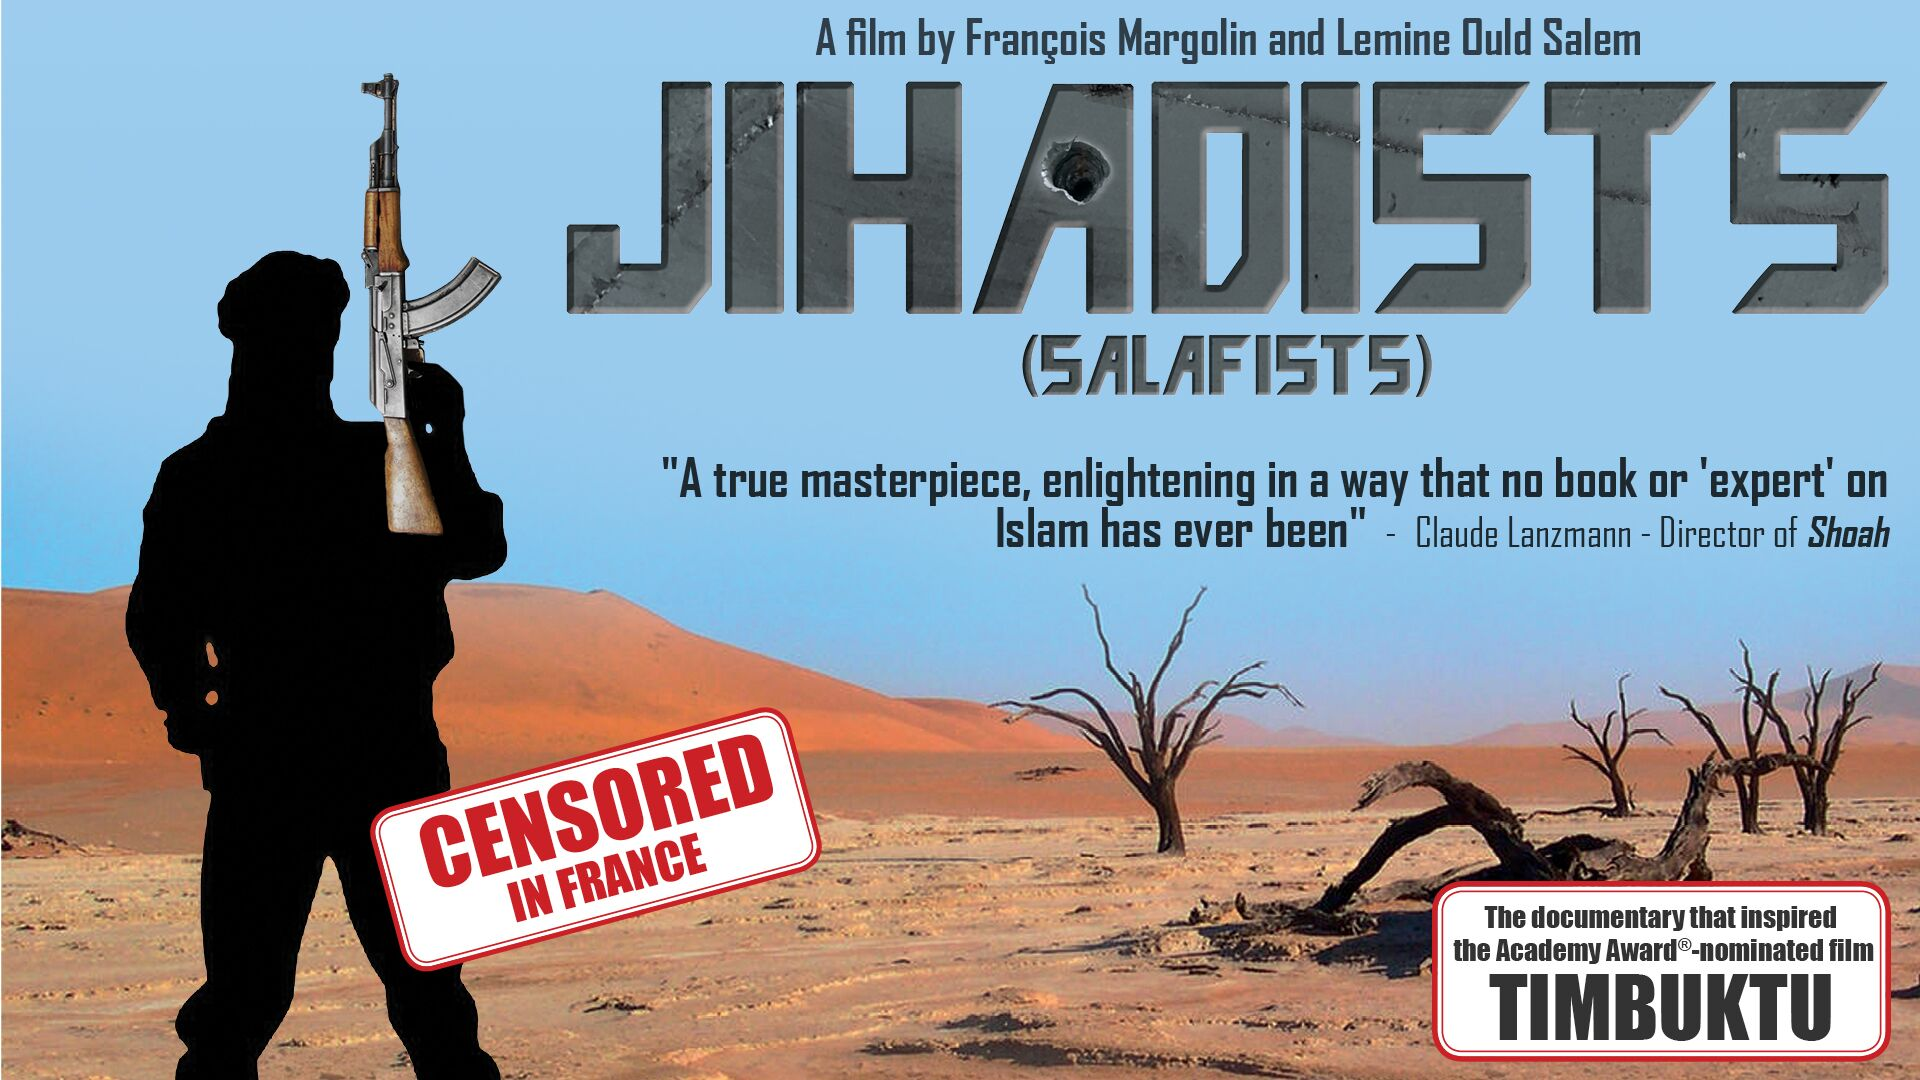 The Documentary 'Jihadists' Provides a Shocking Look into the Minds of Islamic Extremists